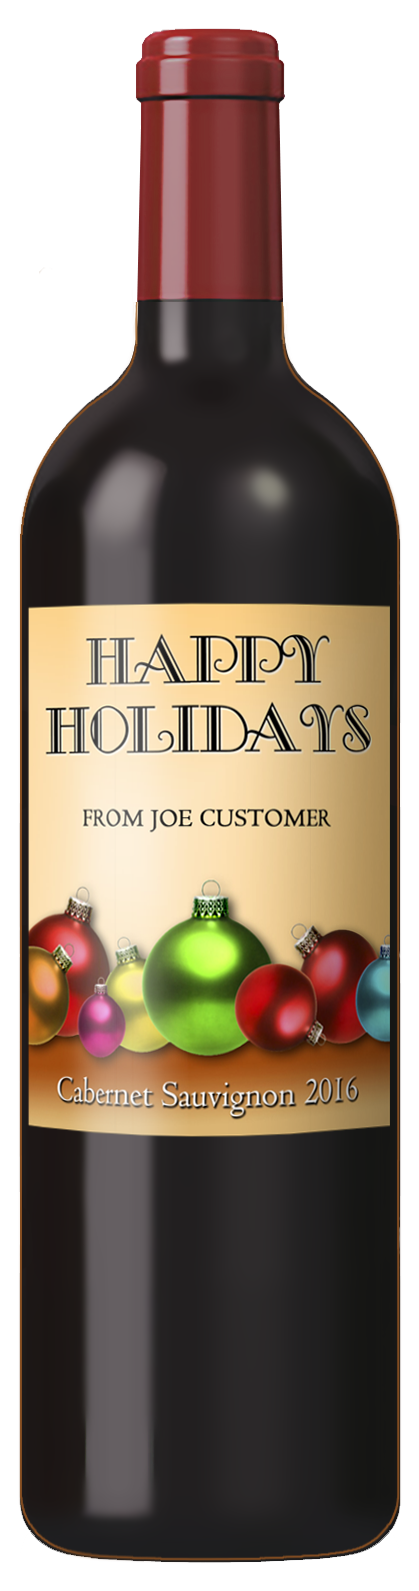 Christmas custom wine label with shiny Christmas ornaments